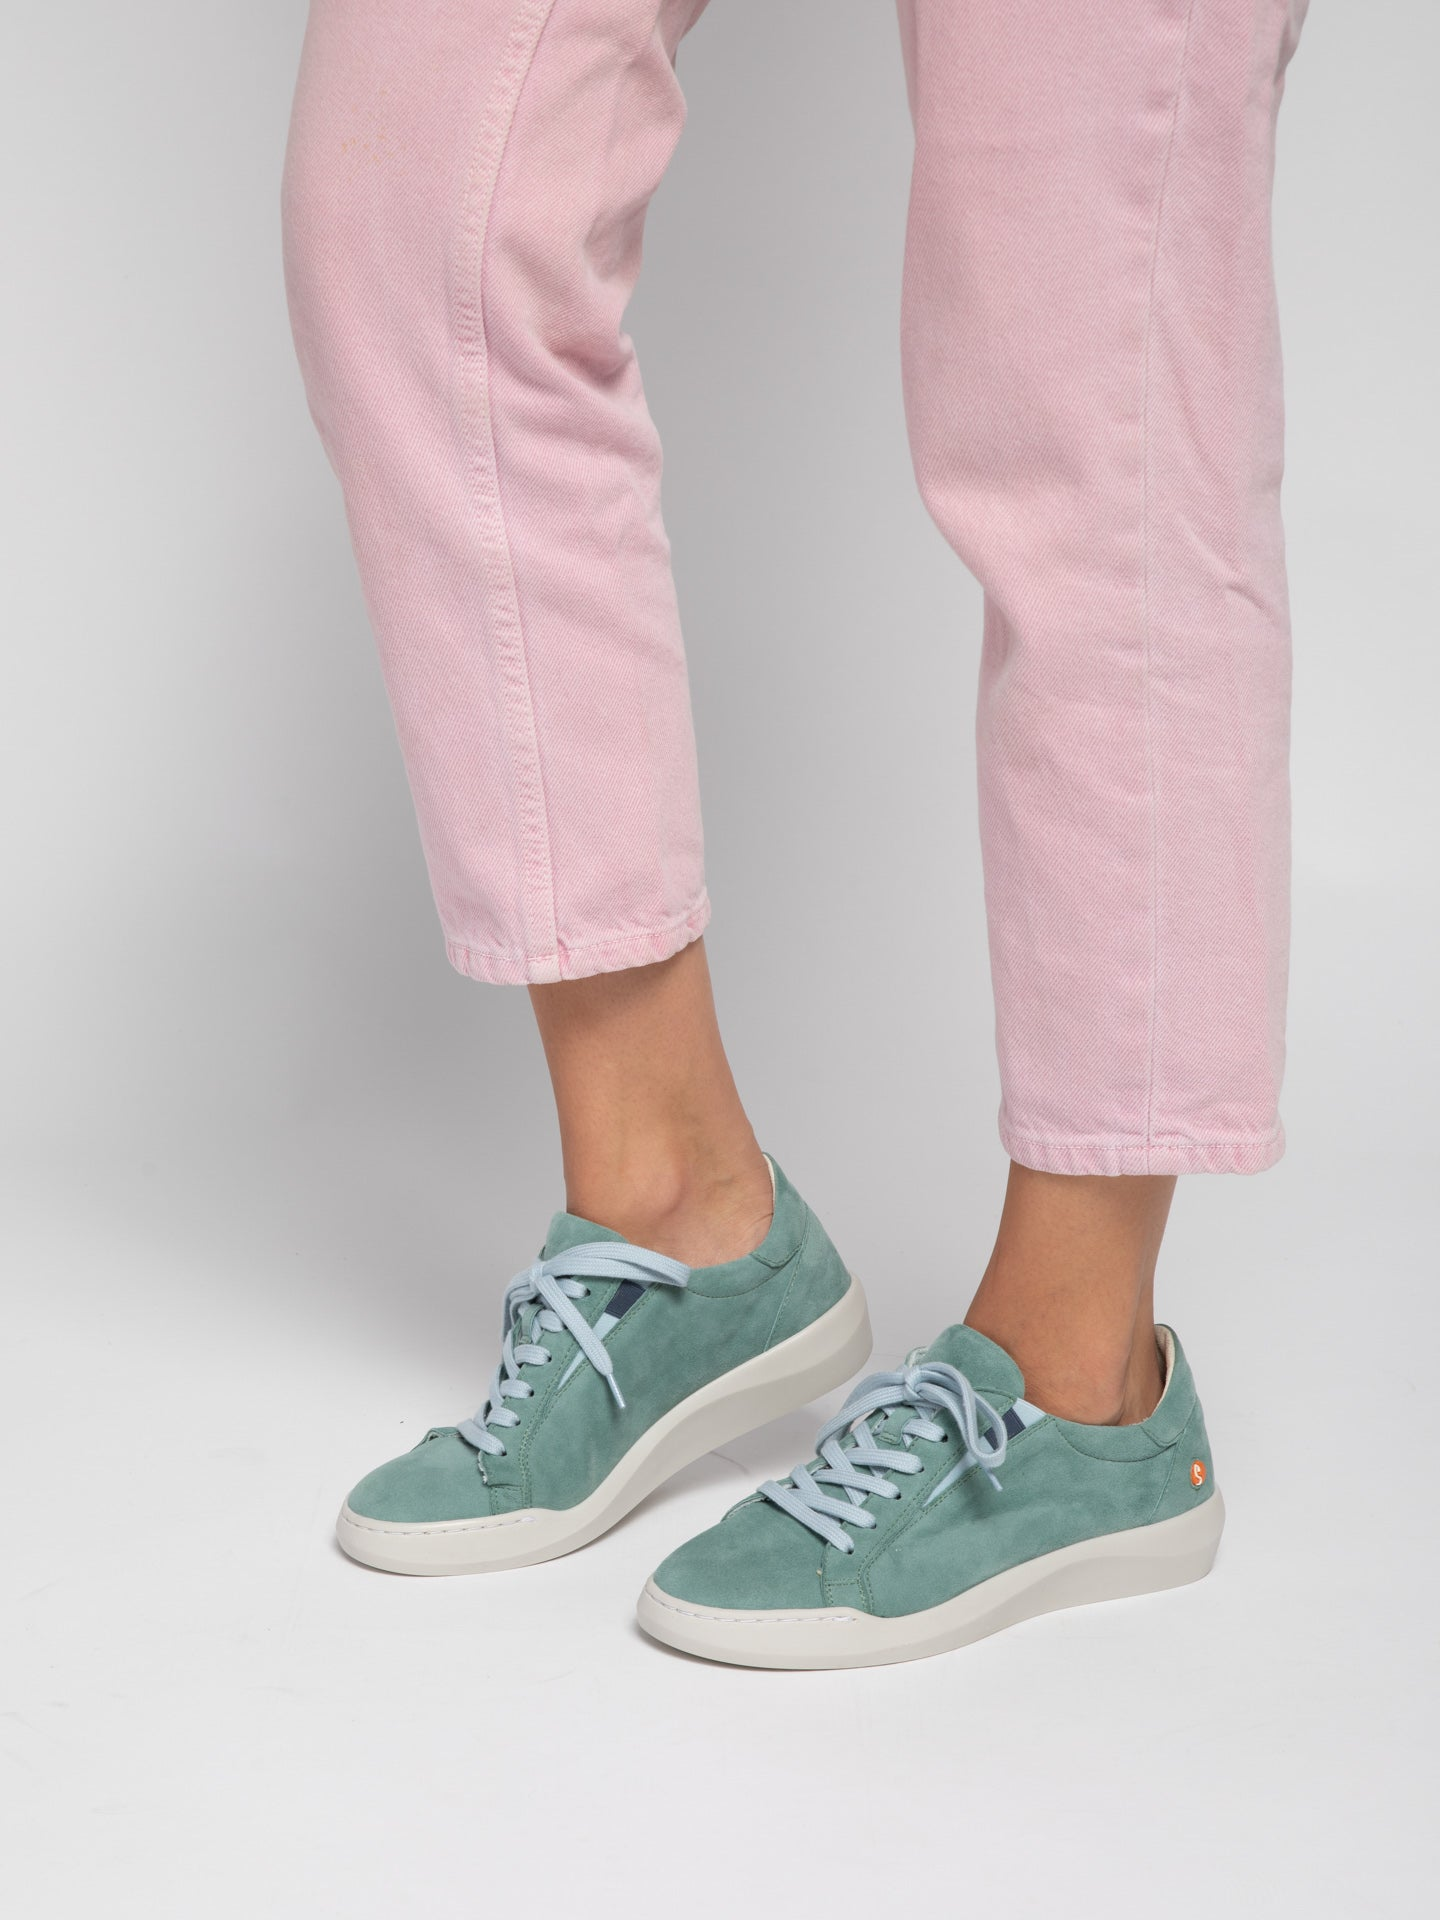 Softinos Lace-up Trainers BELV639SOF SILKY AQUA